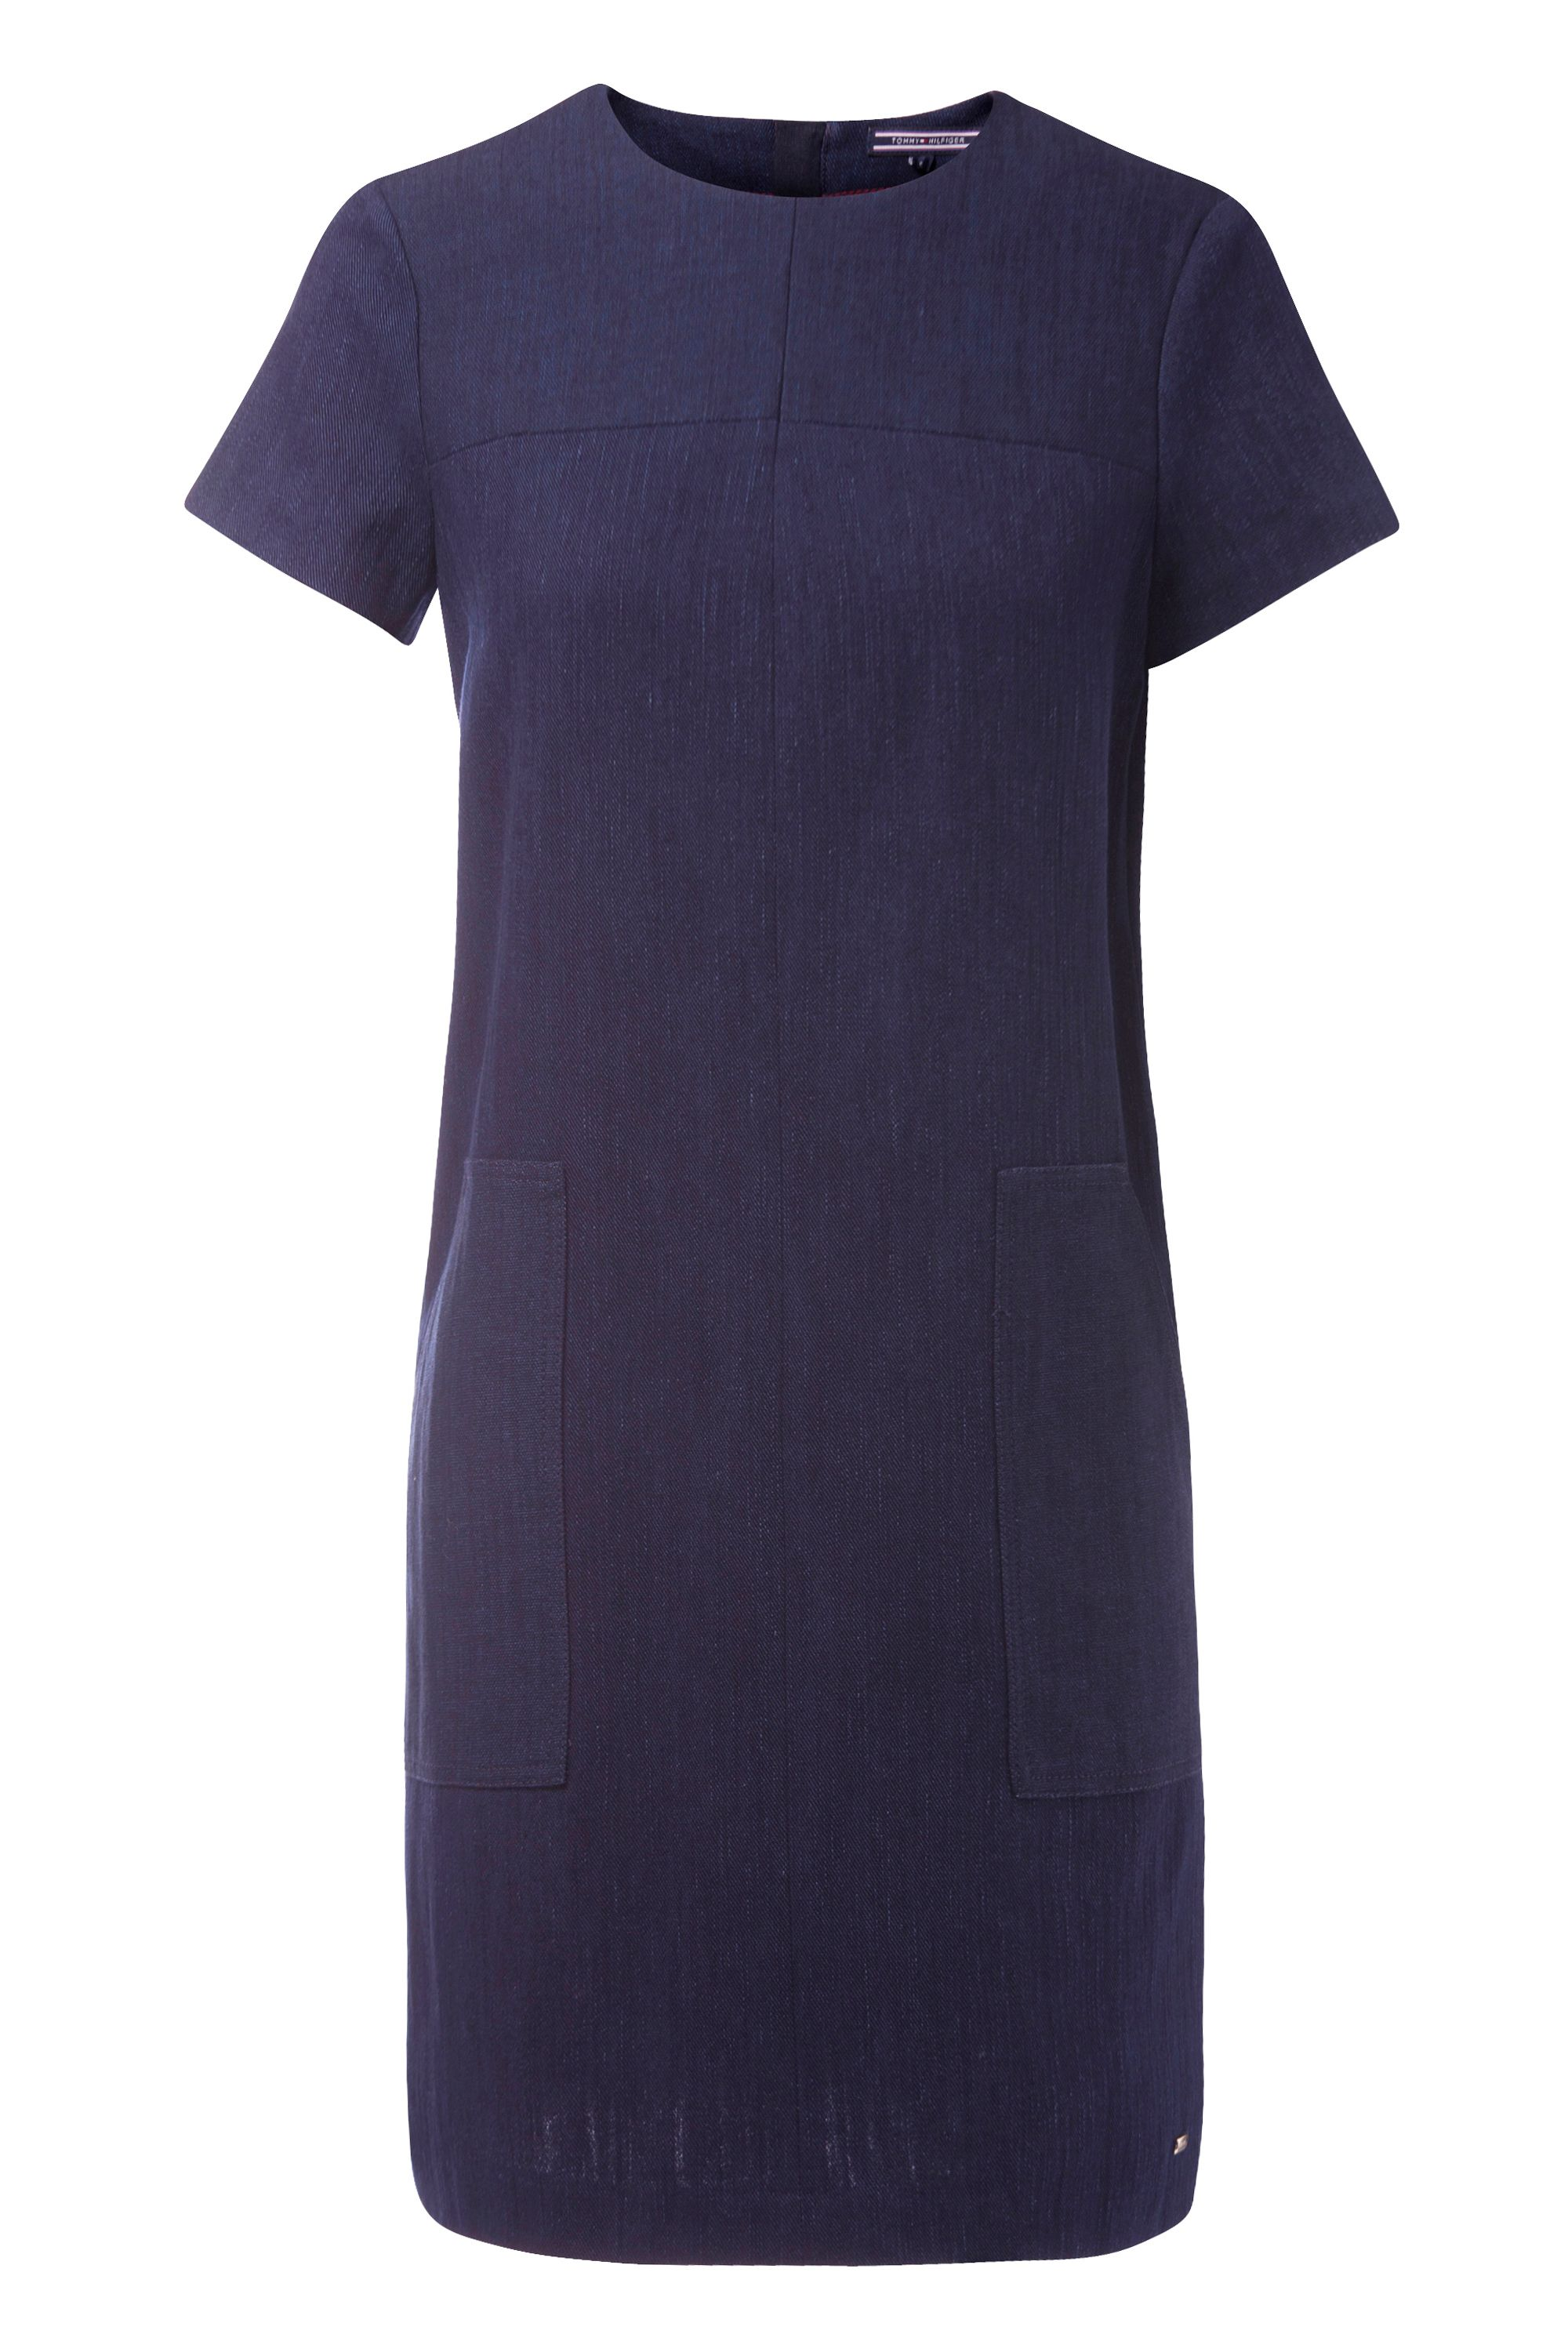 Tommy Hilfiger Saba Dress, Blue